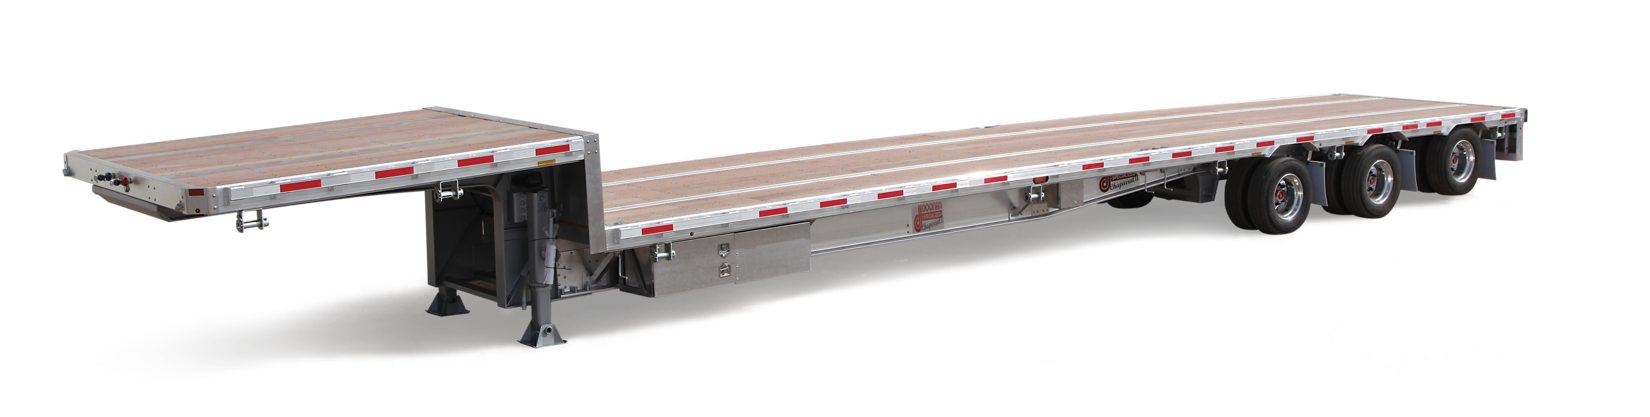 Aluminum Flatbed Trailer Flooring Carpet Vidalondon